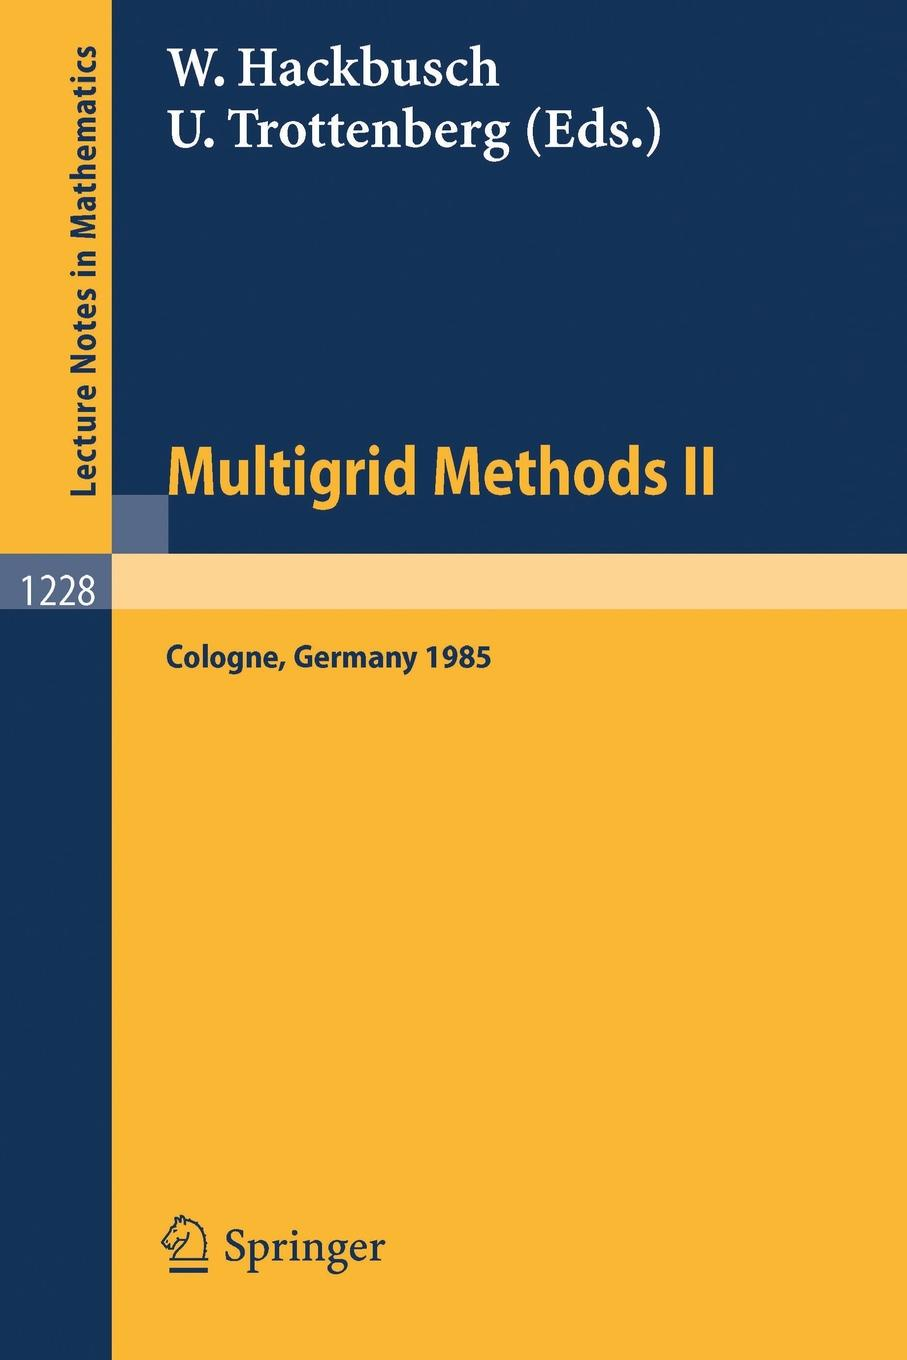 Multigrid Methods II. Proceedings of the 2nd European Conference on Multigrid Methods Held at Cologne, October 1-4, 1985 adrian rogers foundations for our faith volume 1 2nd edition romans 1 4